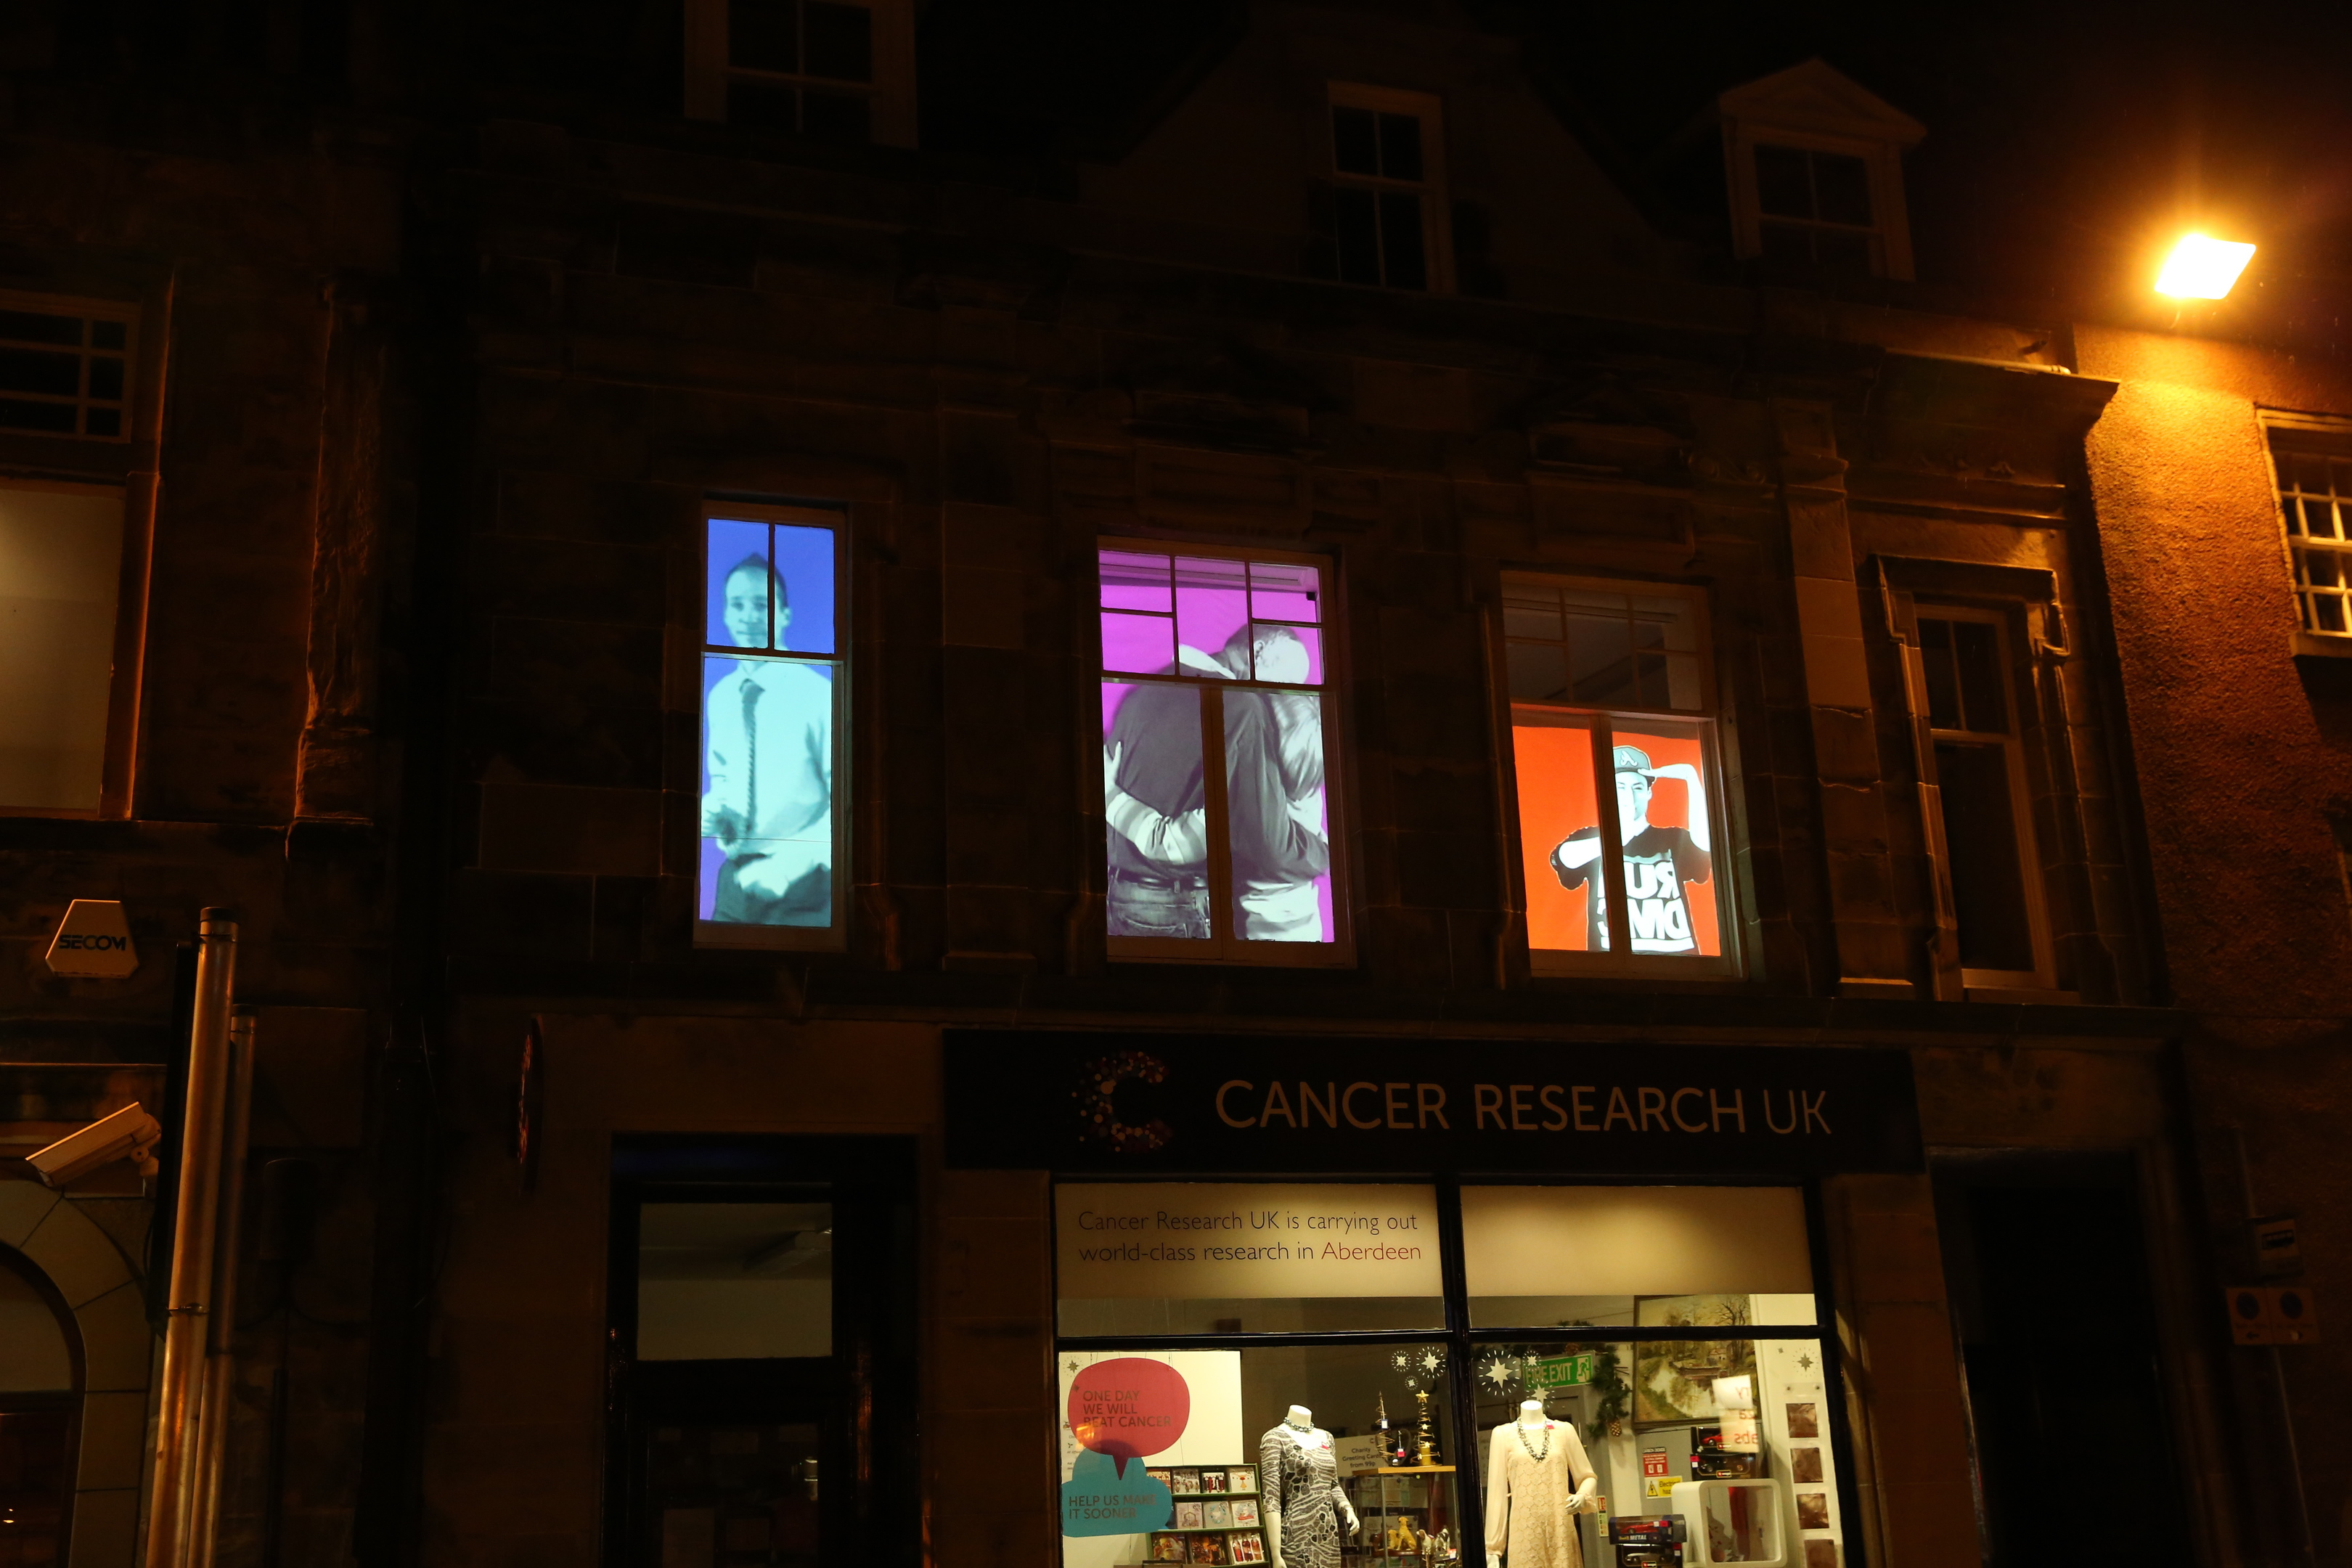 Stills from the Granite Video which will be shone onto windows across Aberdeen.